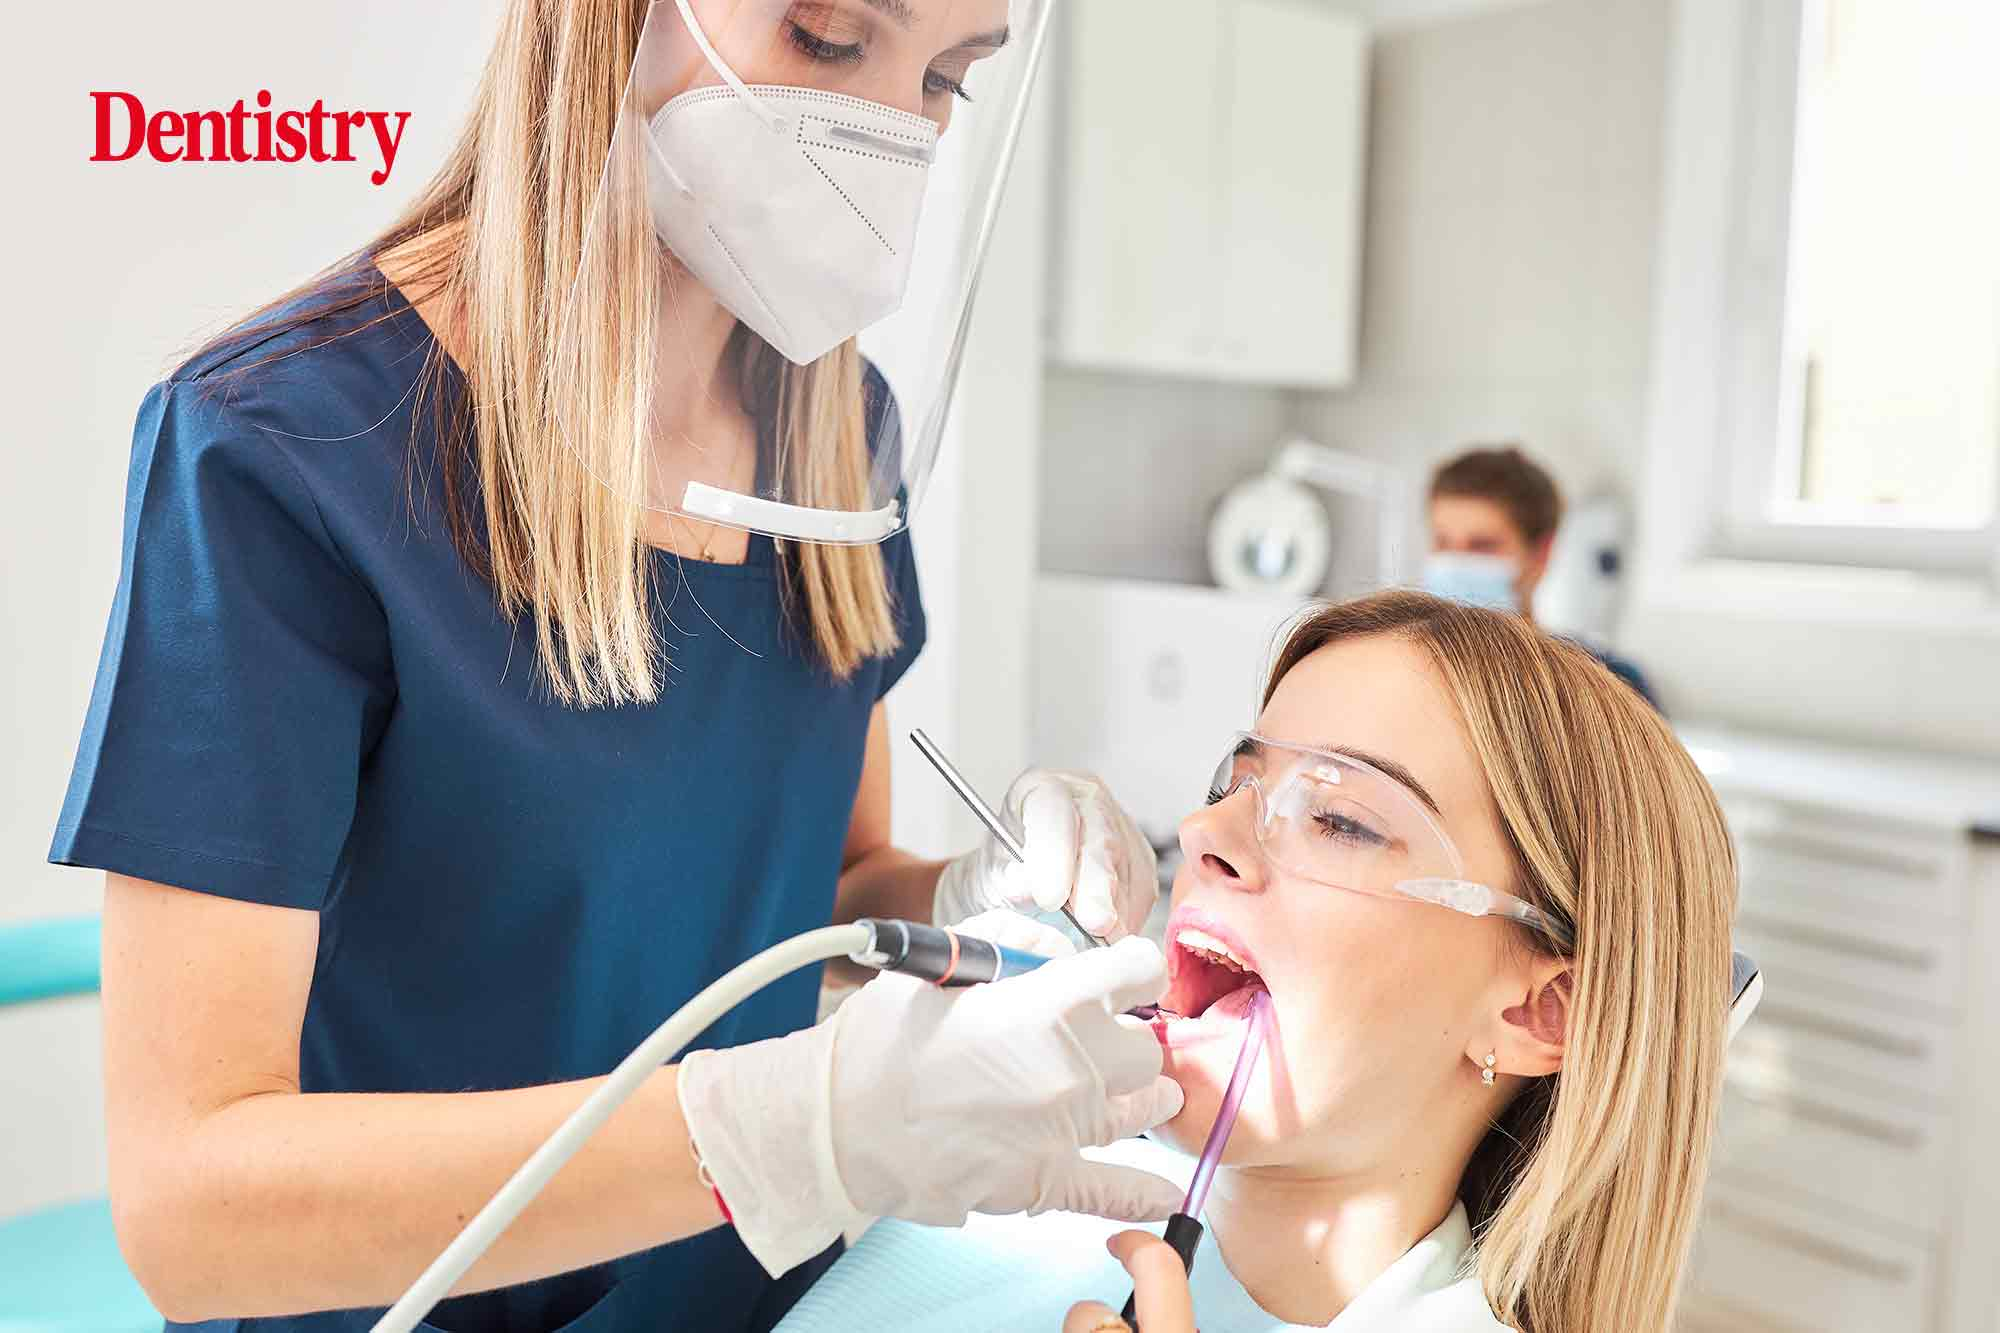 WHO calls for better use of dental nurses and hygienists to address oral health needs